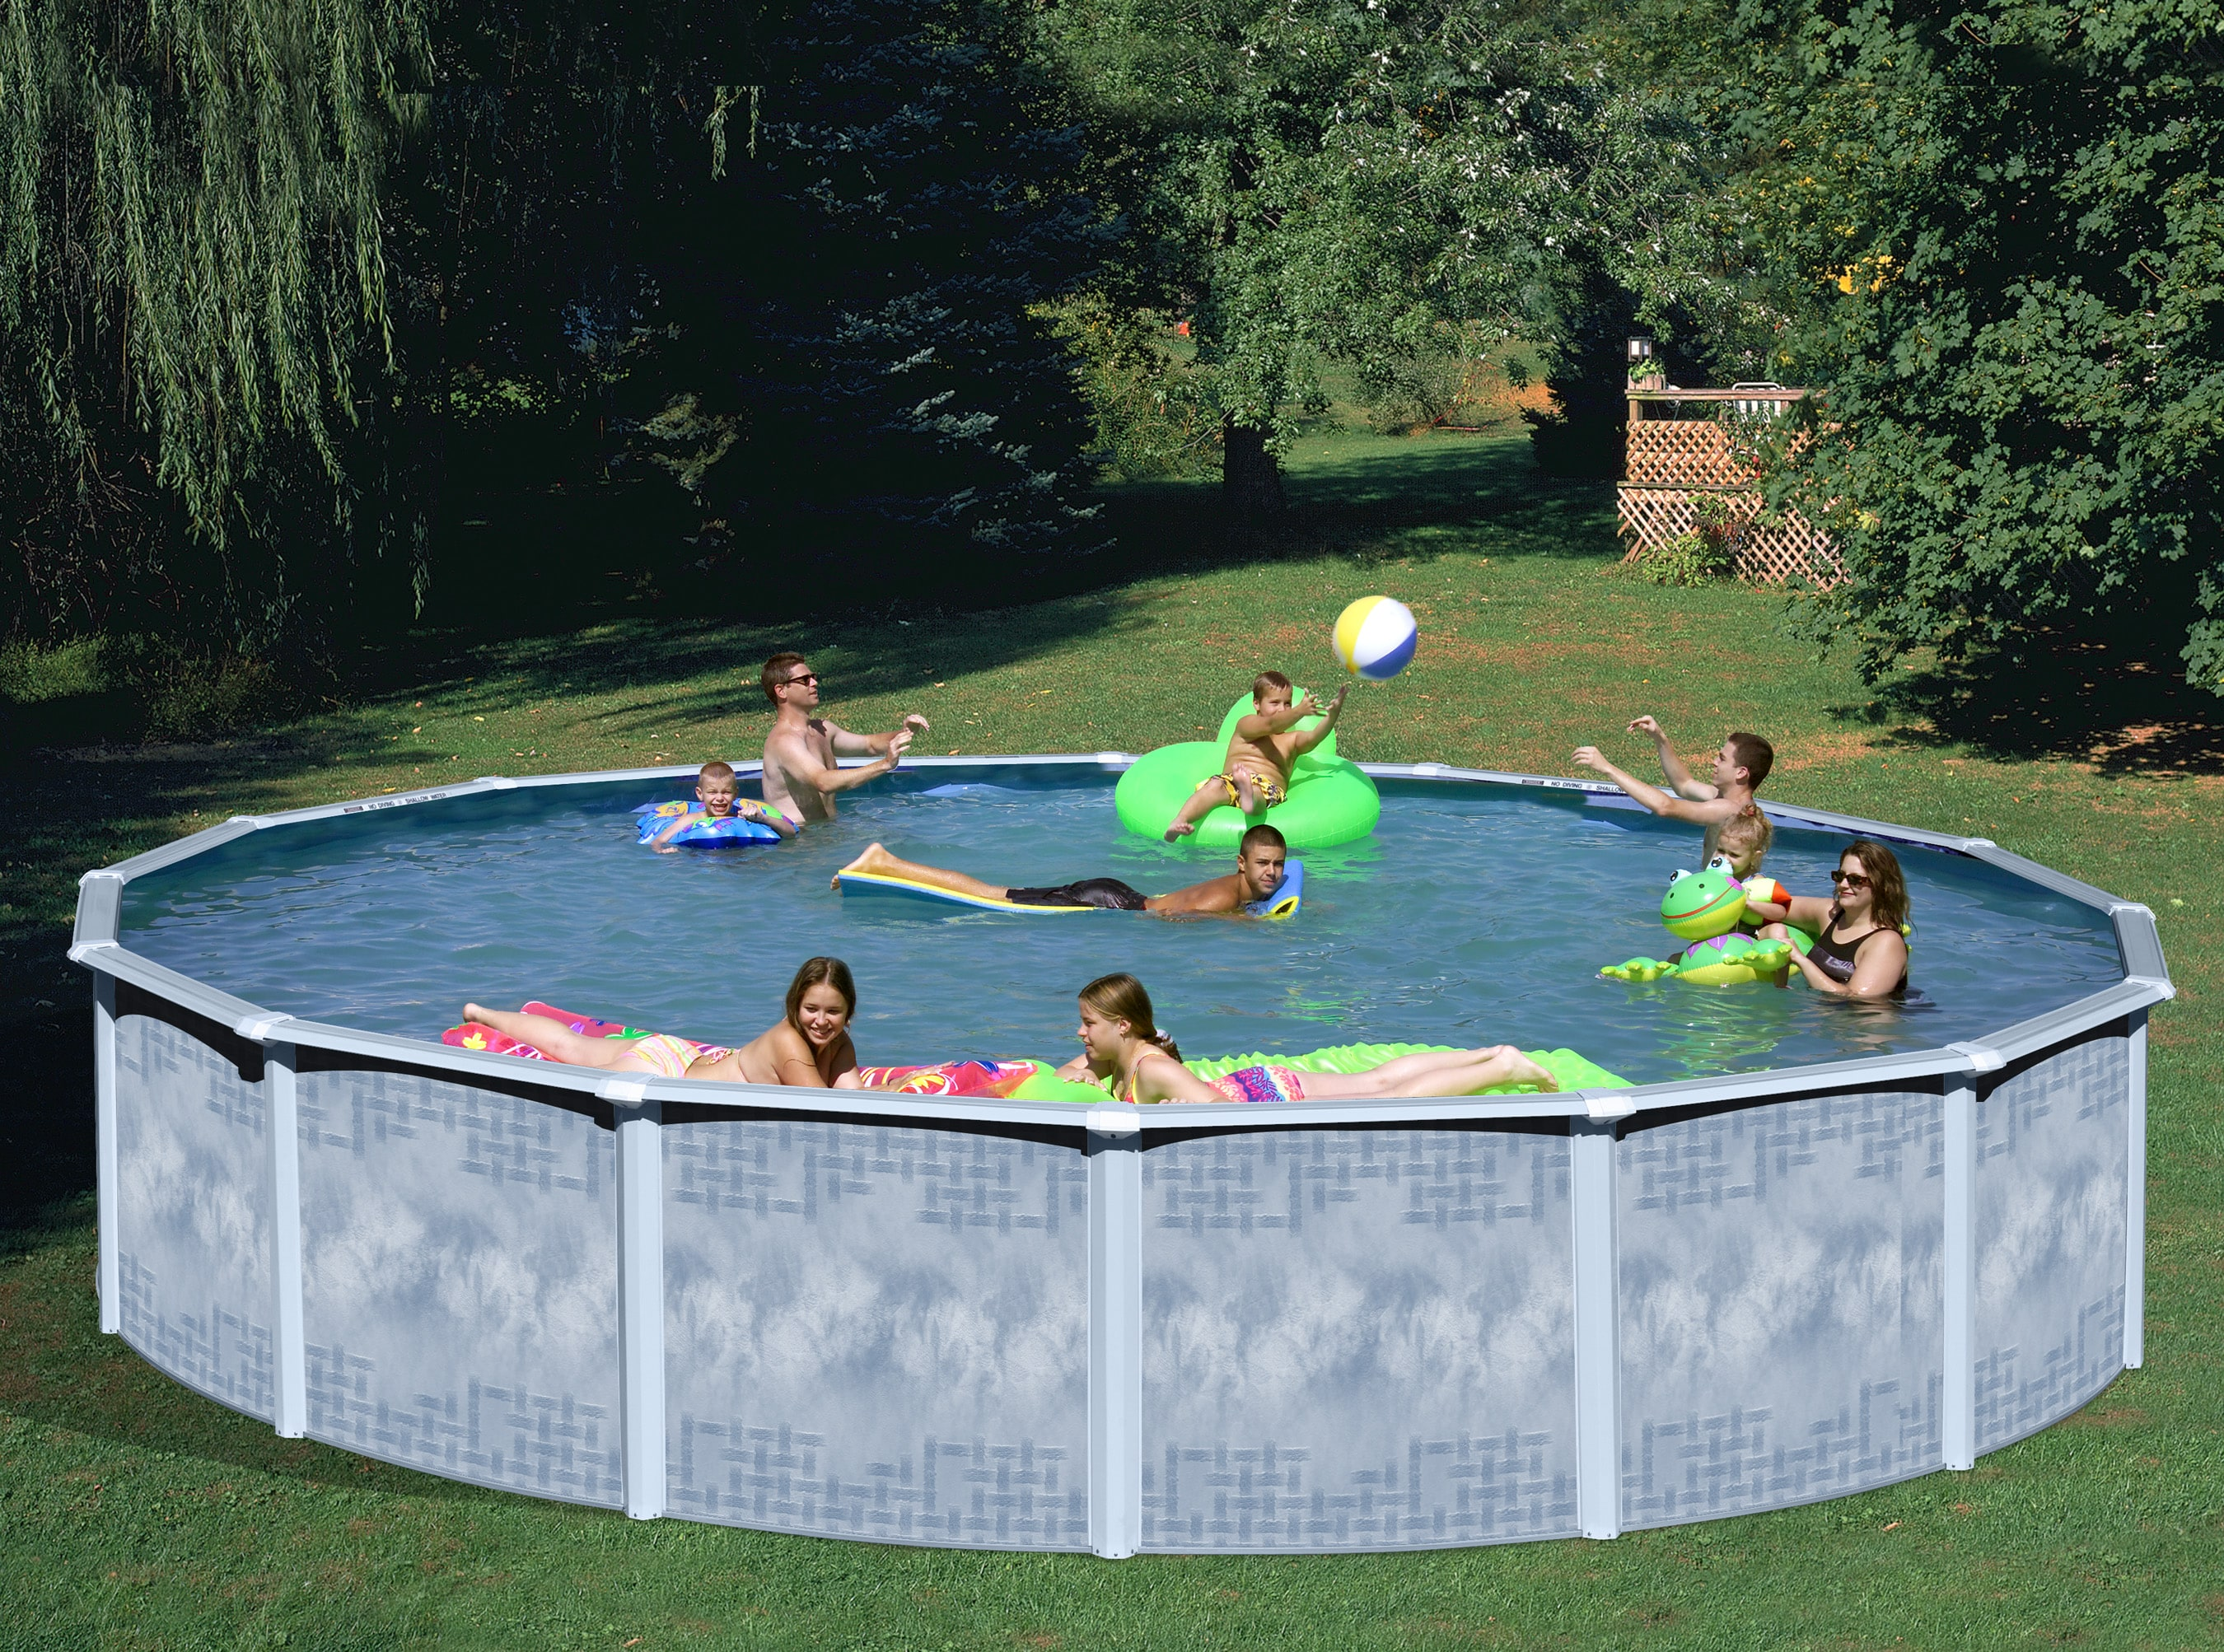 Quest 30-foot All-in-1 Above Ground Swimming Pool Kit